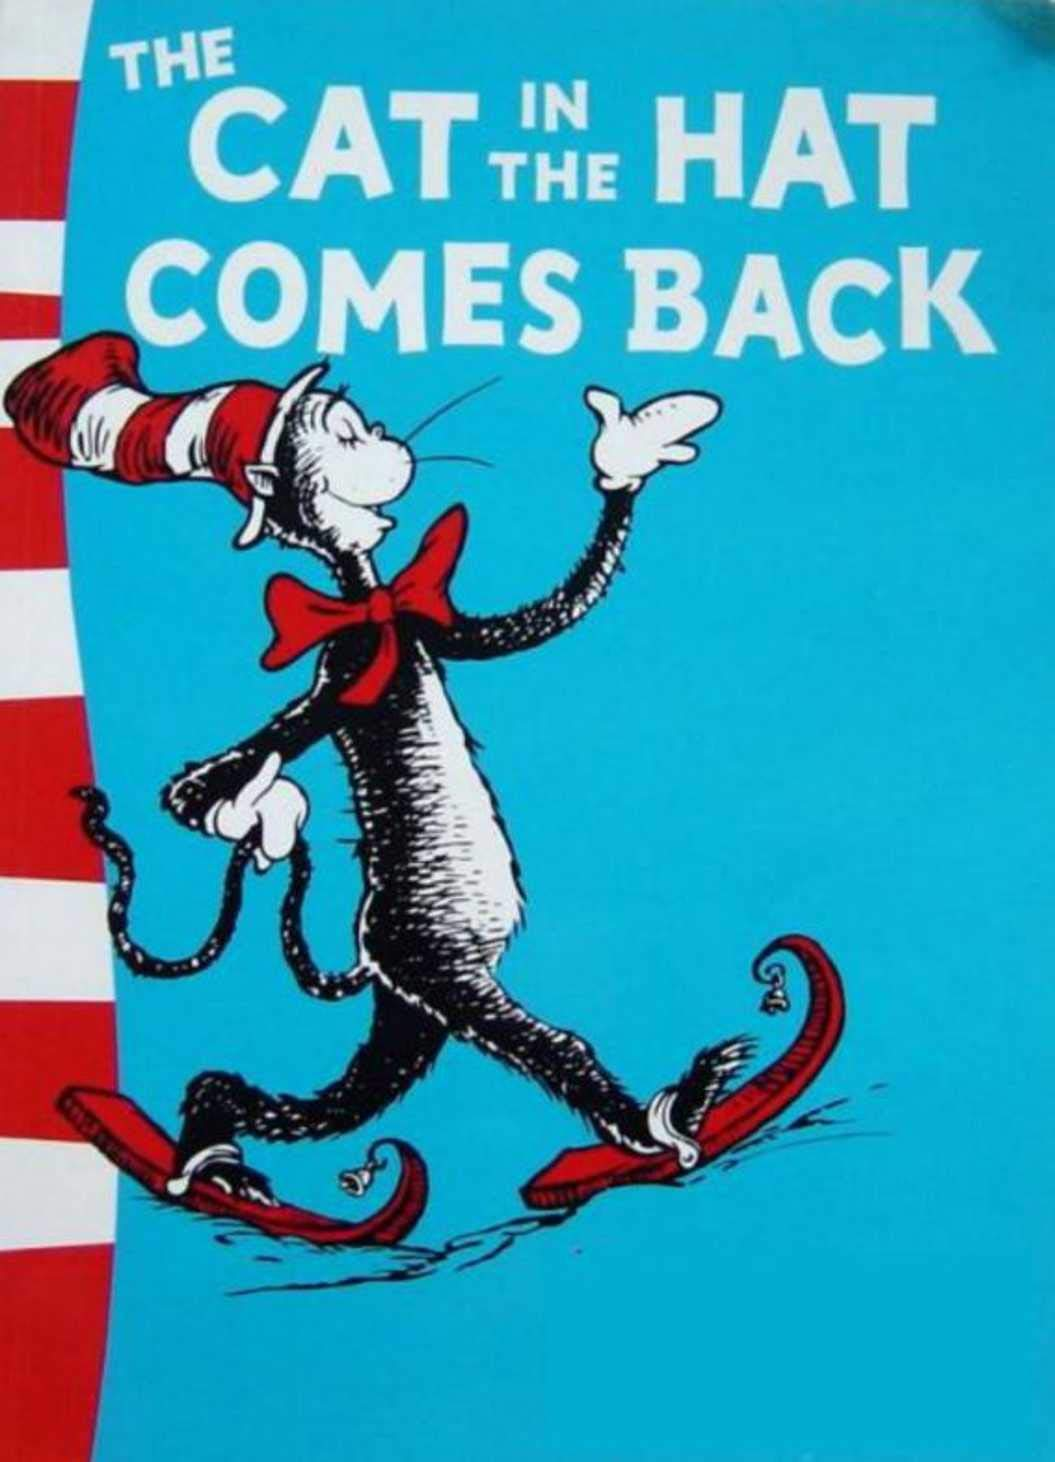 The Cat in the Hat Comes Back: Recommended for classic children's picture books